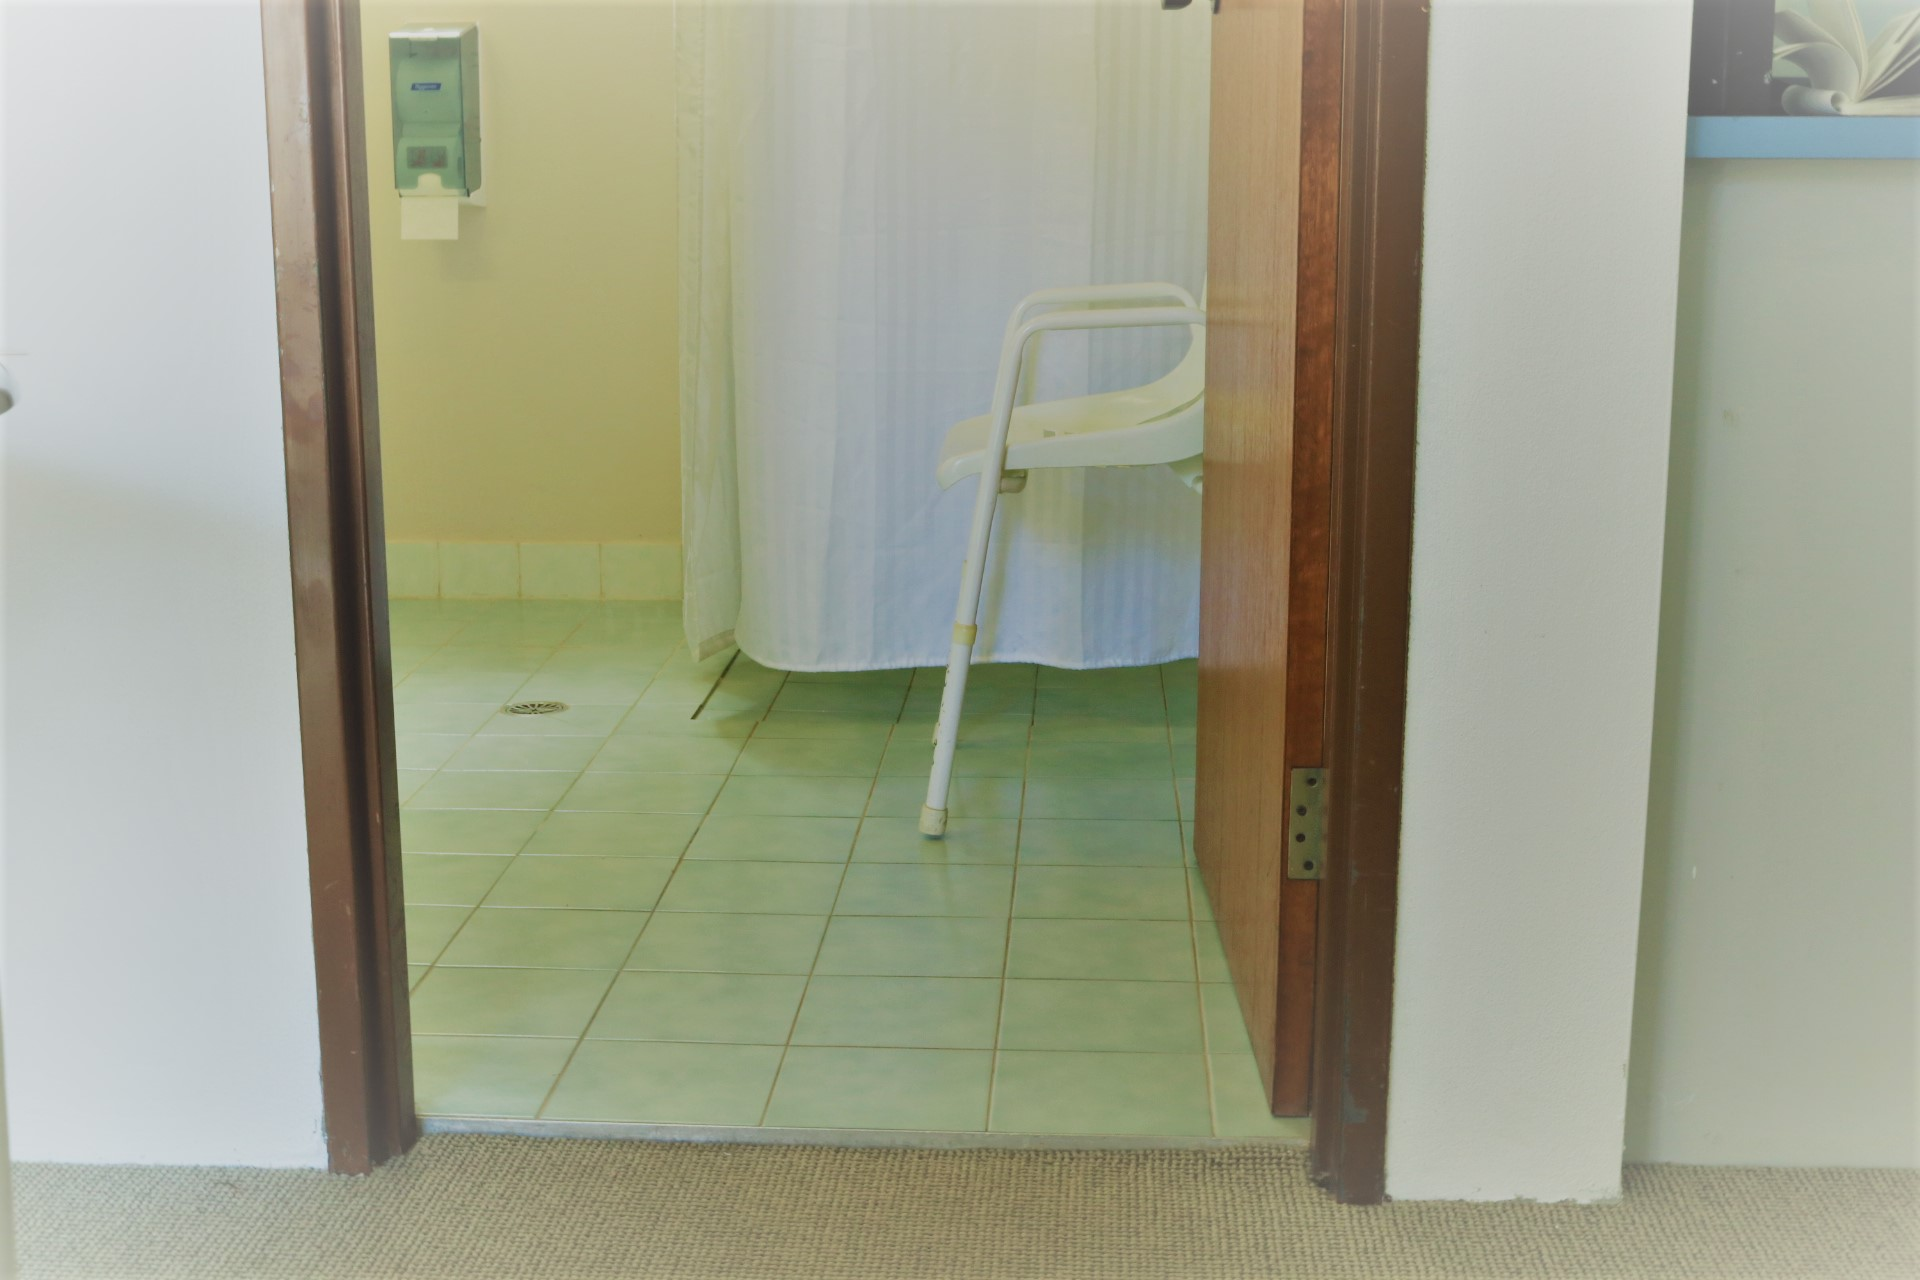 Bathroom Access